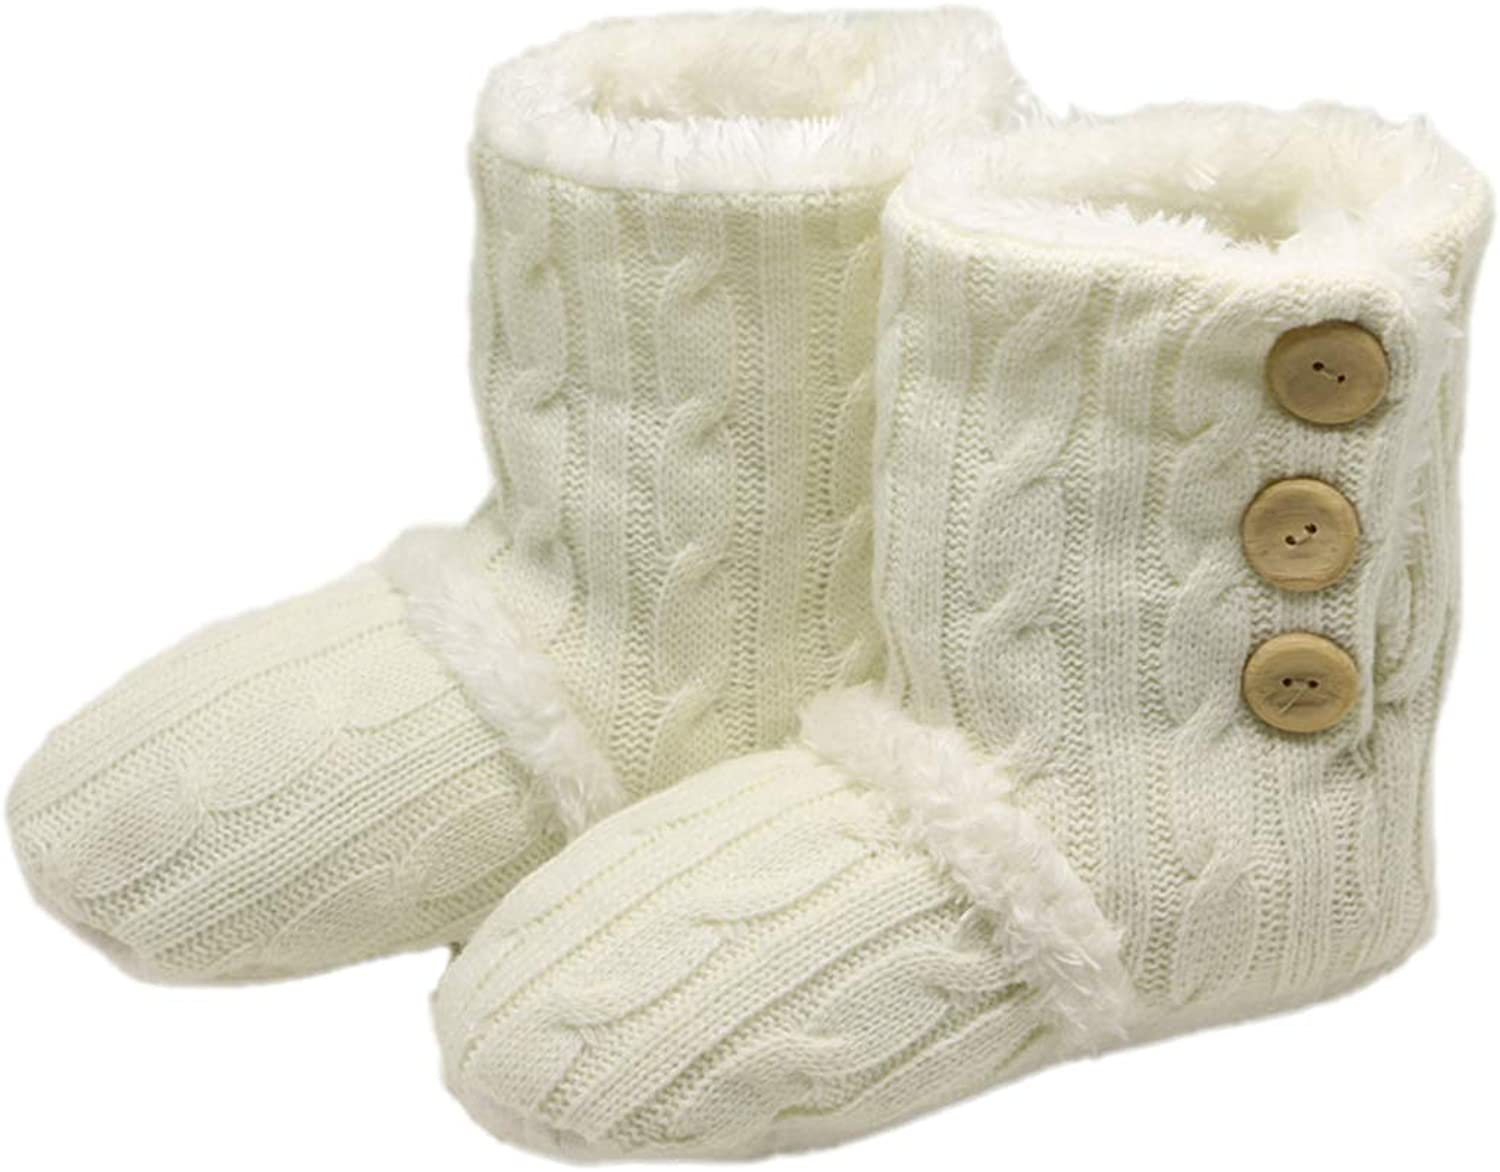 Winter Snow Boots Adult Button Warm Soft Knitting Wool Floor Non-Slip Plush Home Household Indoor shoes